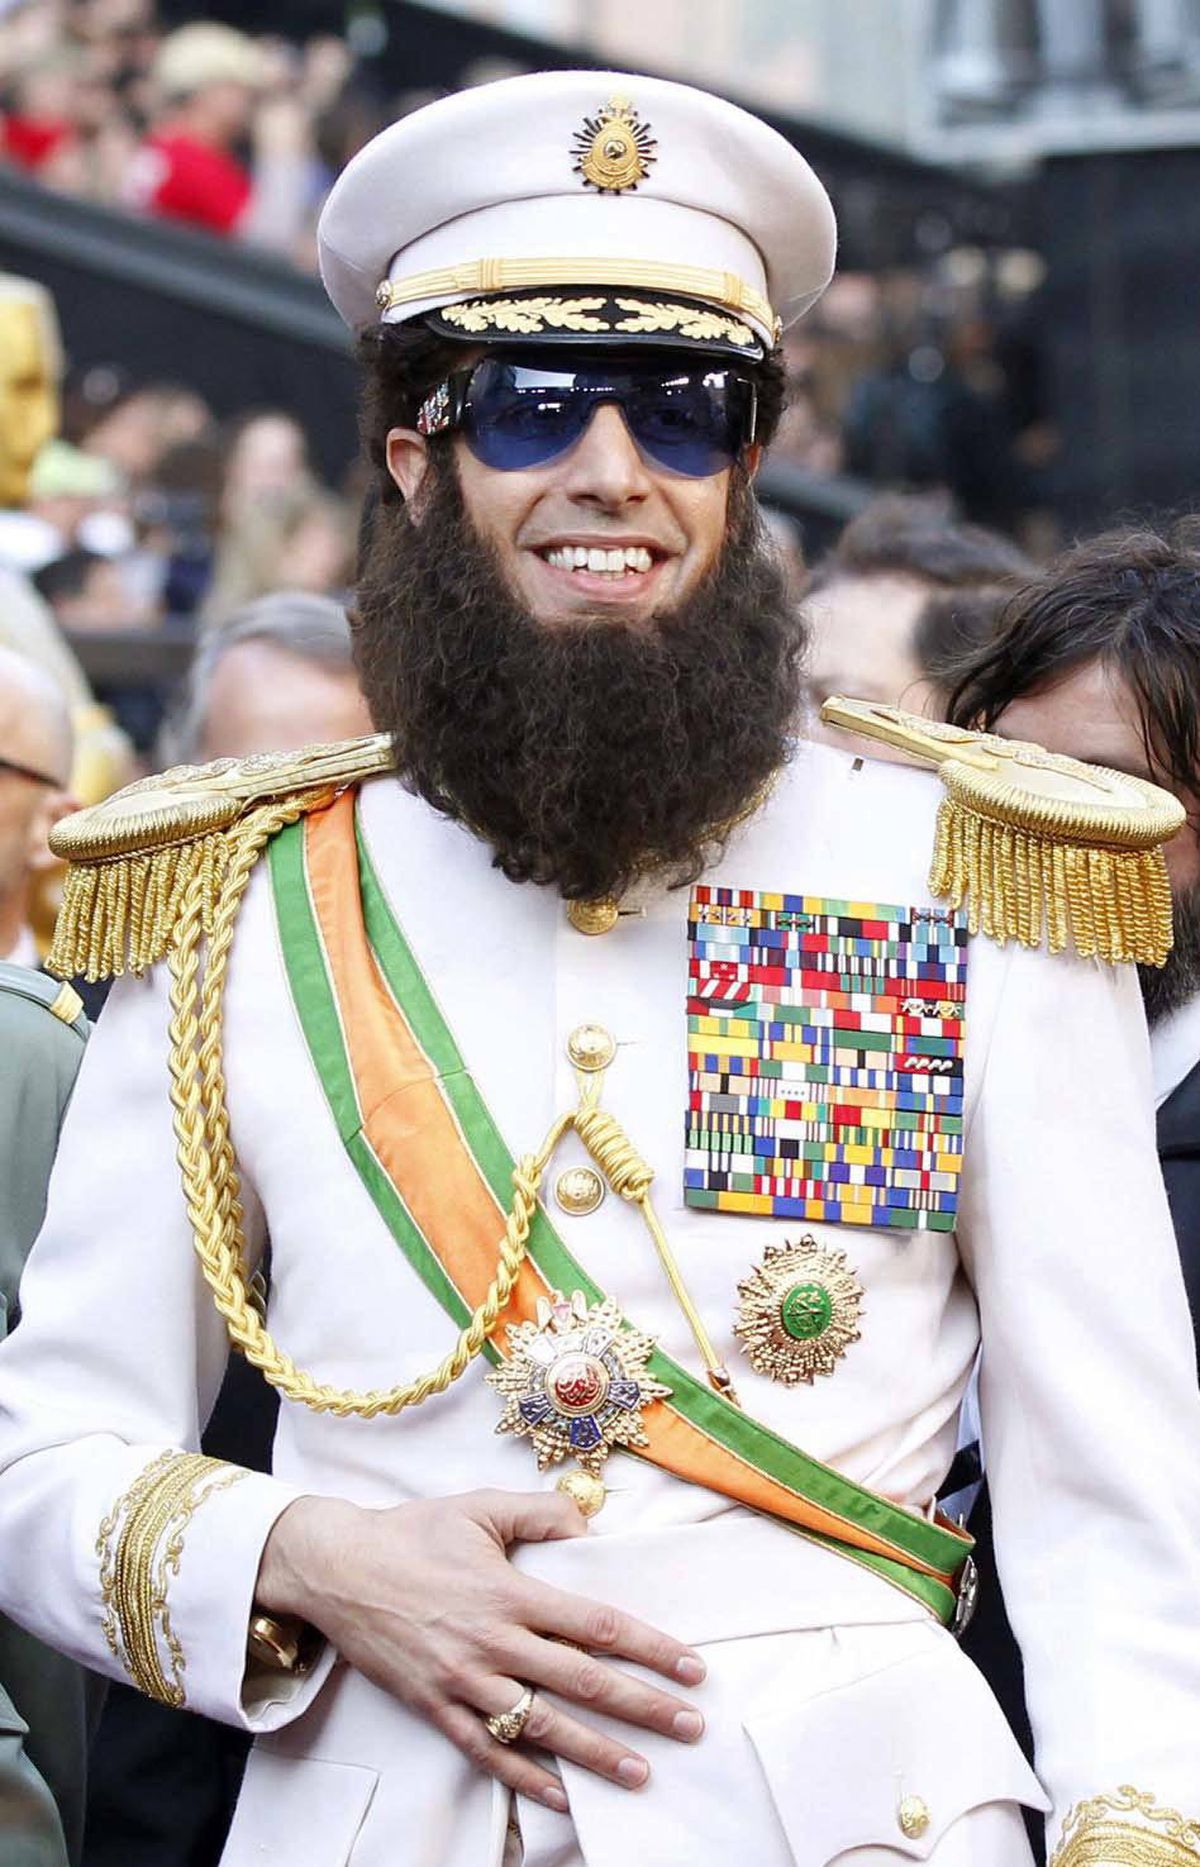 After playing a stereotypical Kazakh dolt and a stereotypical gay Austrian fashion reporter, Sacha Baron Cohen comes up with an entirely new idea for a movie: playing a stereotypical North African despot. Here he is in character on the Oscars red carpet on Sunday.